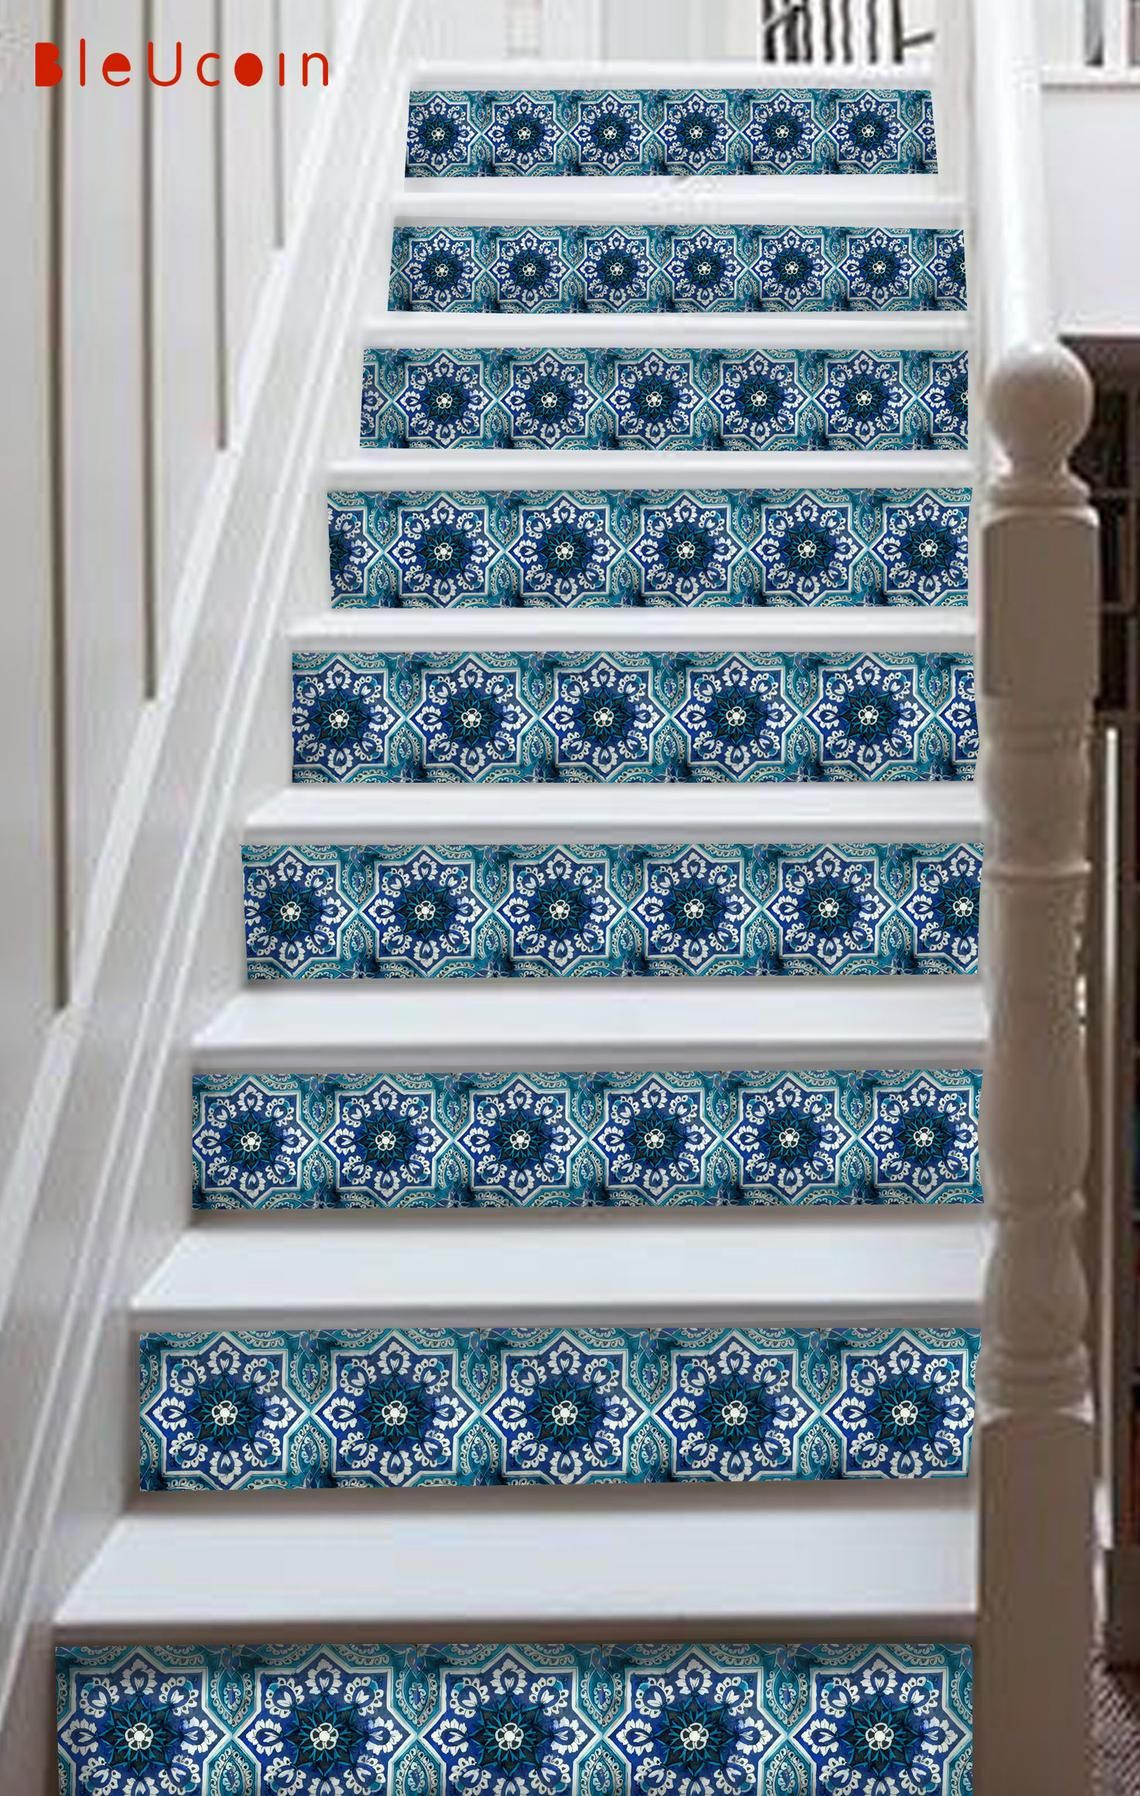 Indian Blue Pottery Tile Decal Blue Pottery Is A Famous Handicraft In India A Well Known Trend For Interior Design The Order With Images Blue Pottery Wall Tiles Tiles